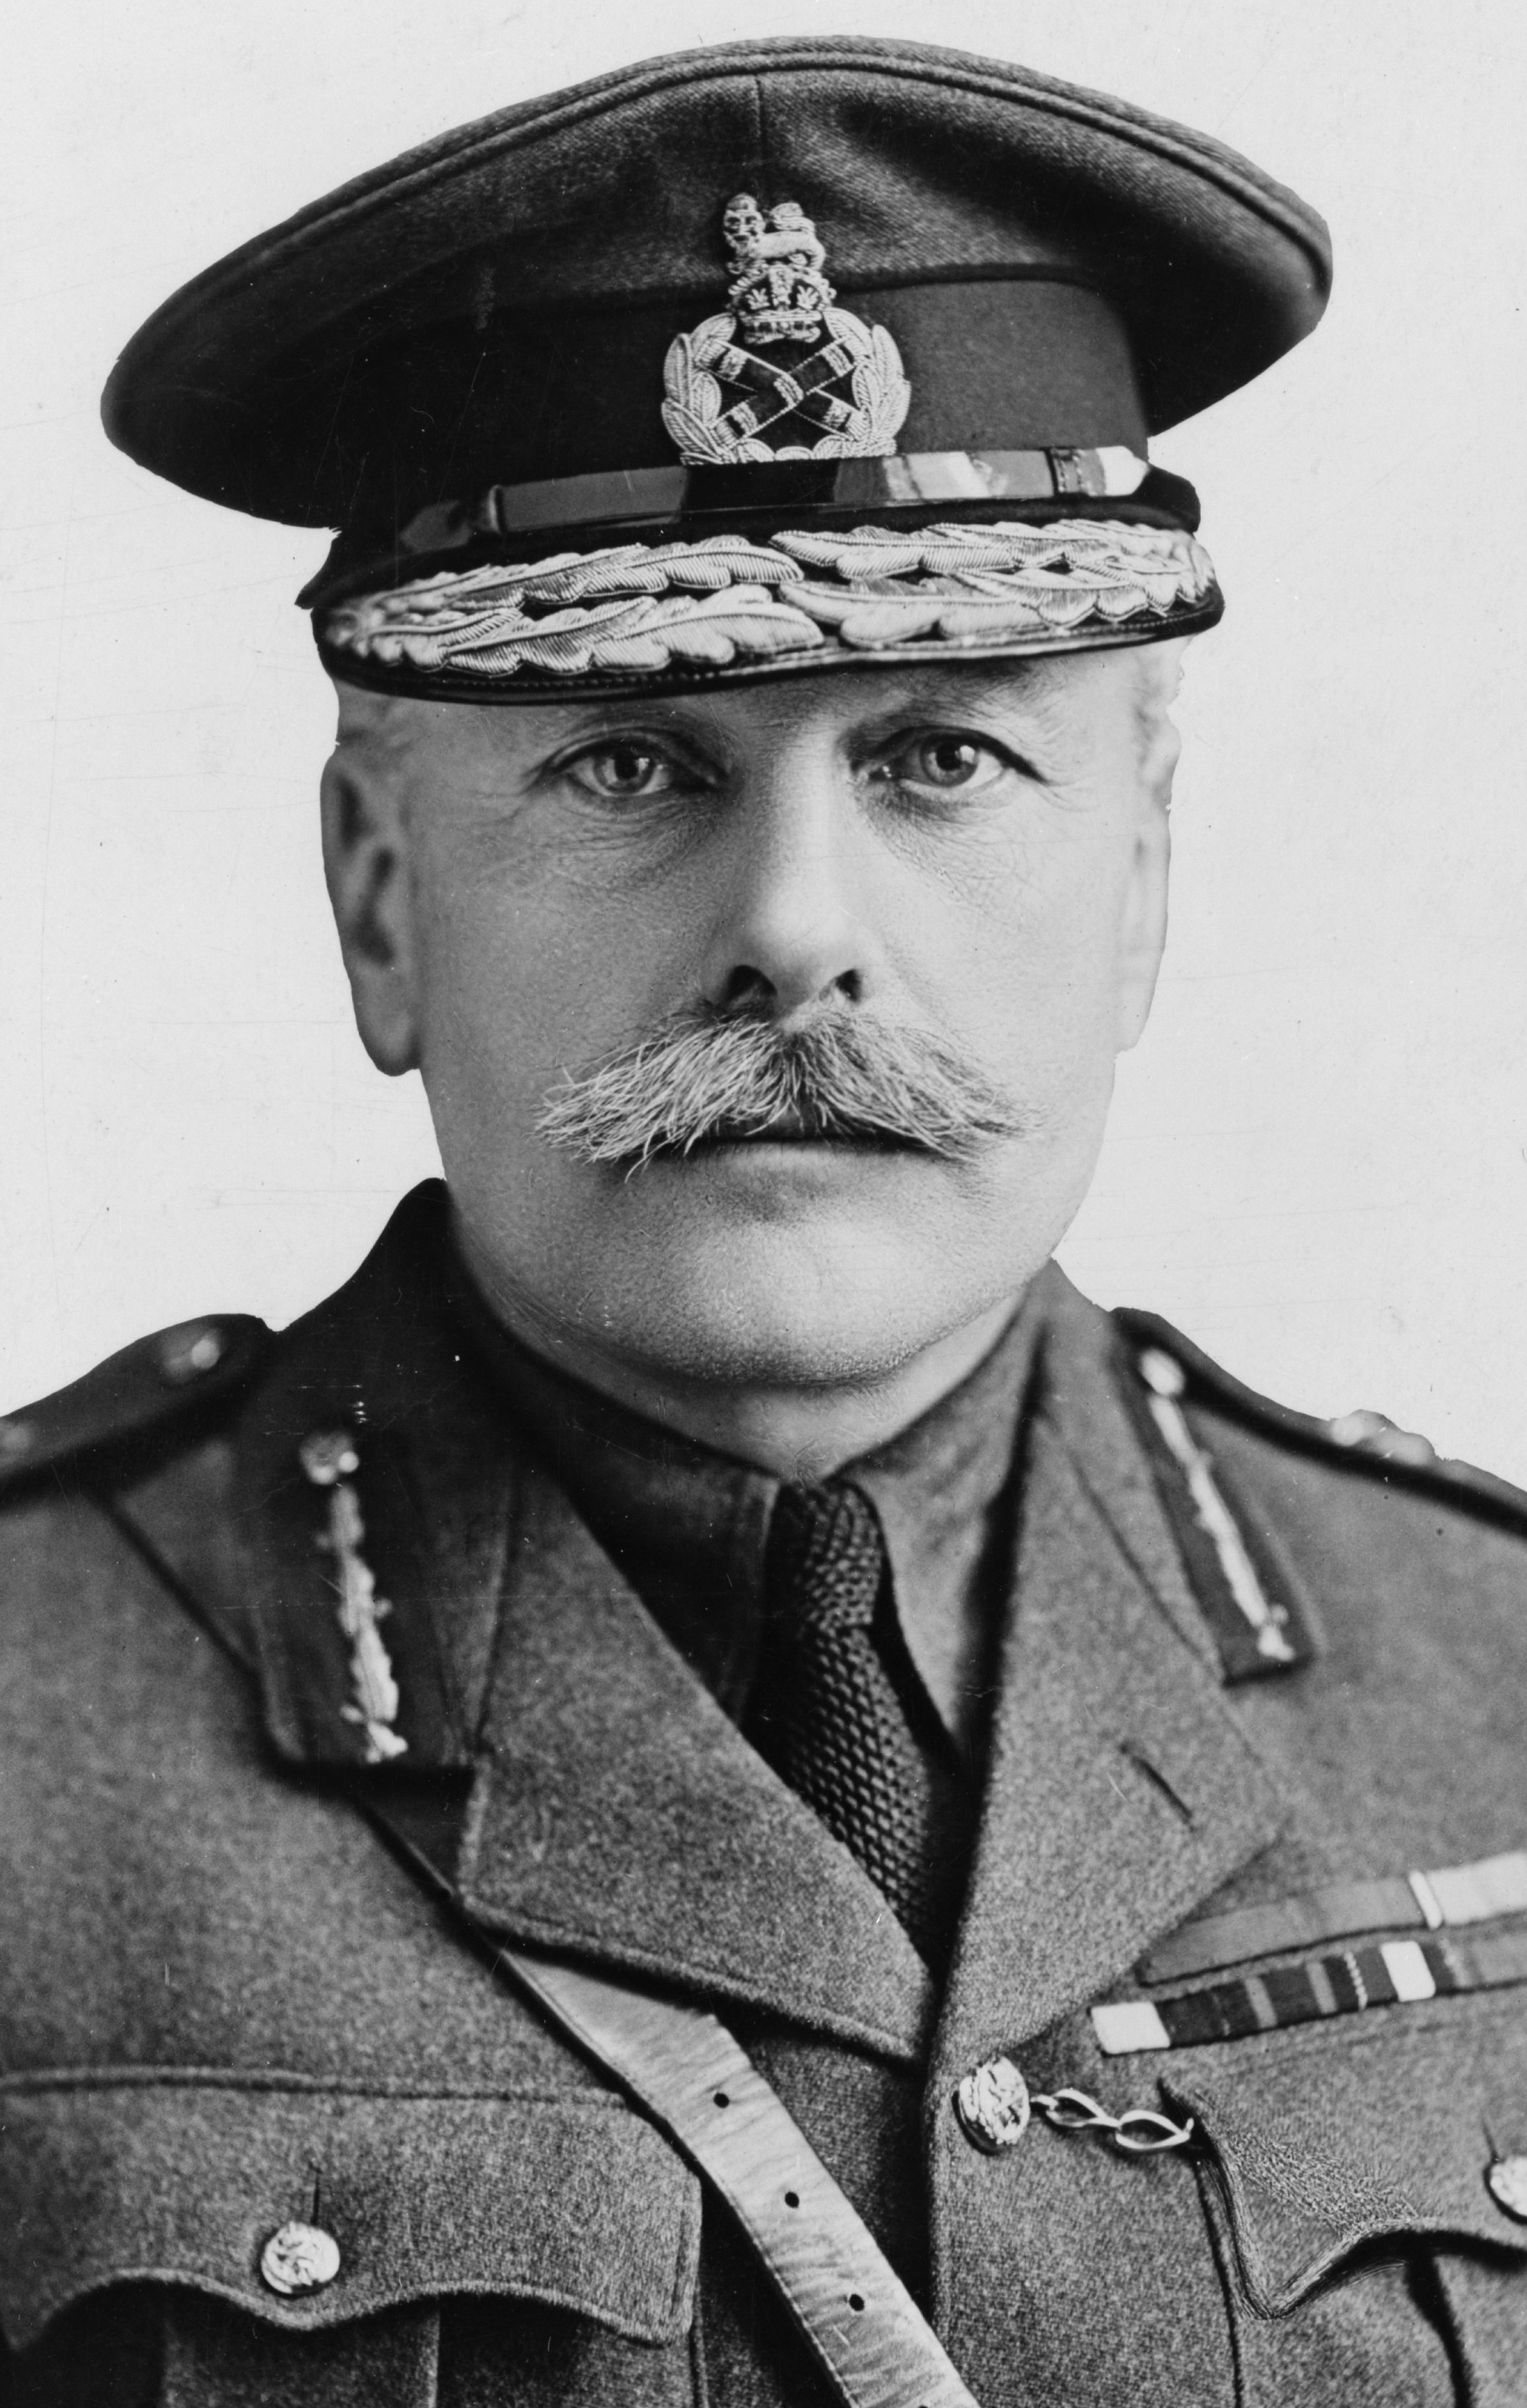 http://upload.wikimedia.org/wikipedia/commons/7/70/Douglas_Haig.jpg